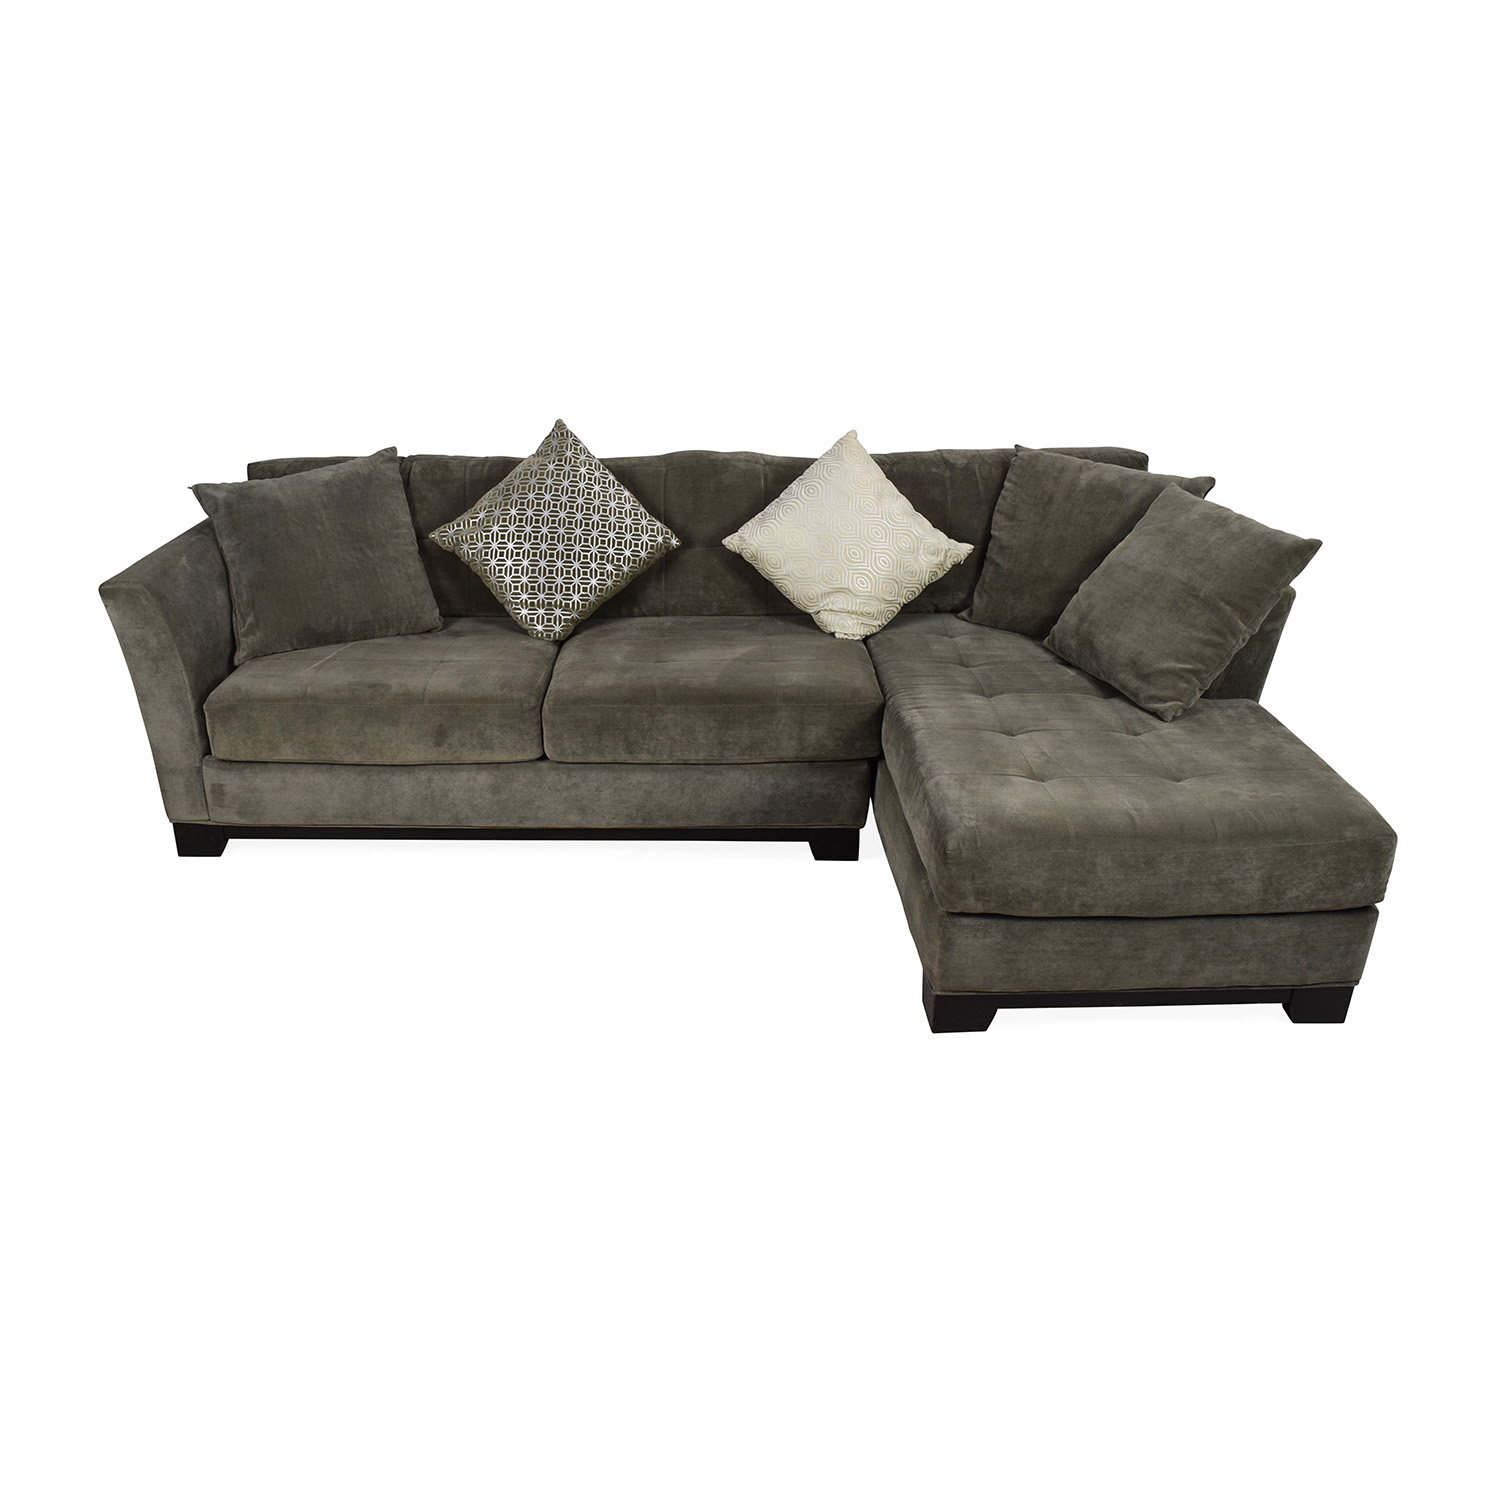 Astounding 50 Off Macys Macys Gray Sectional Couch With Chaise Sofas Pabps2019 Chair Design Images Pabps2019Com